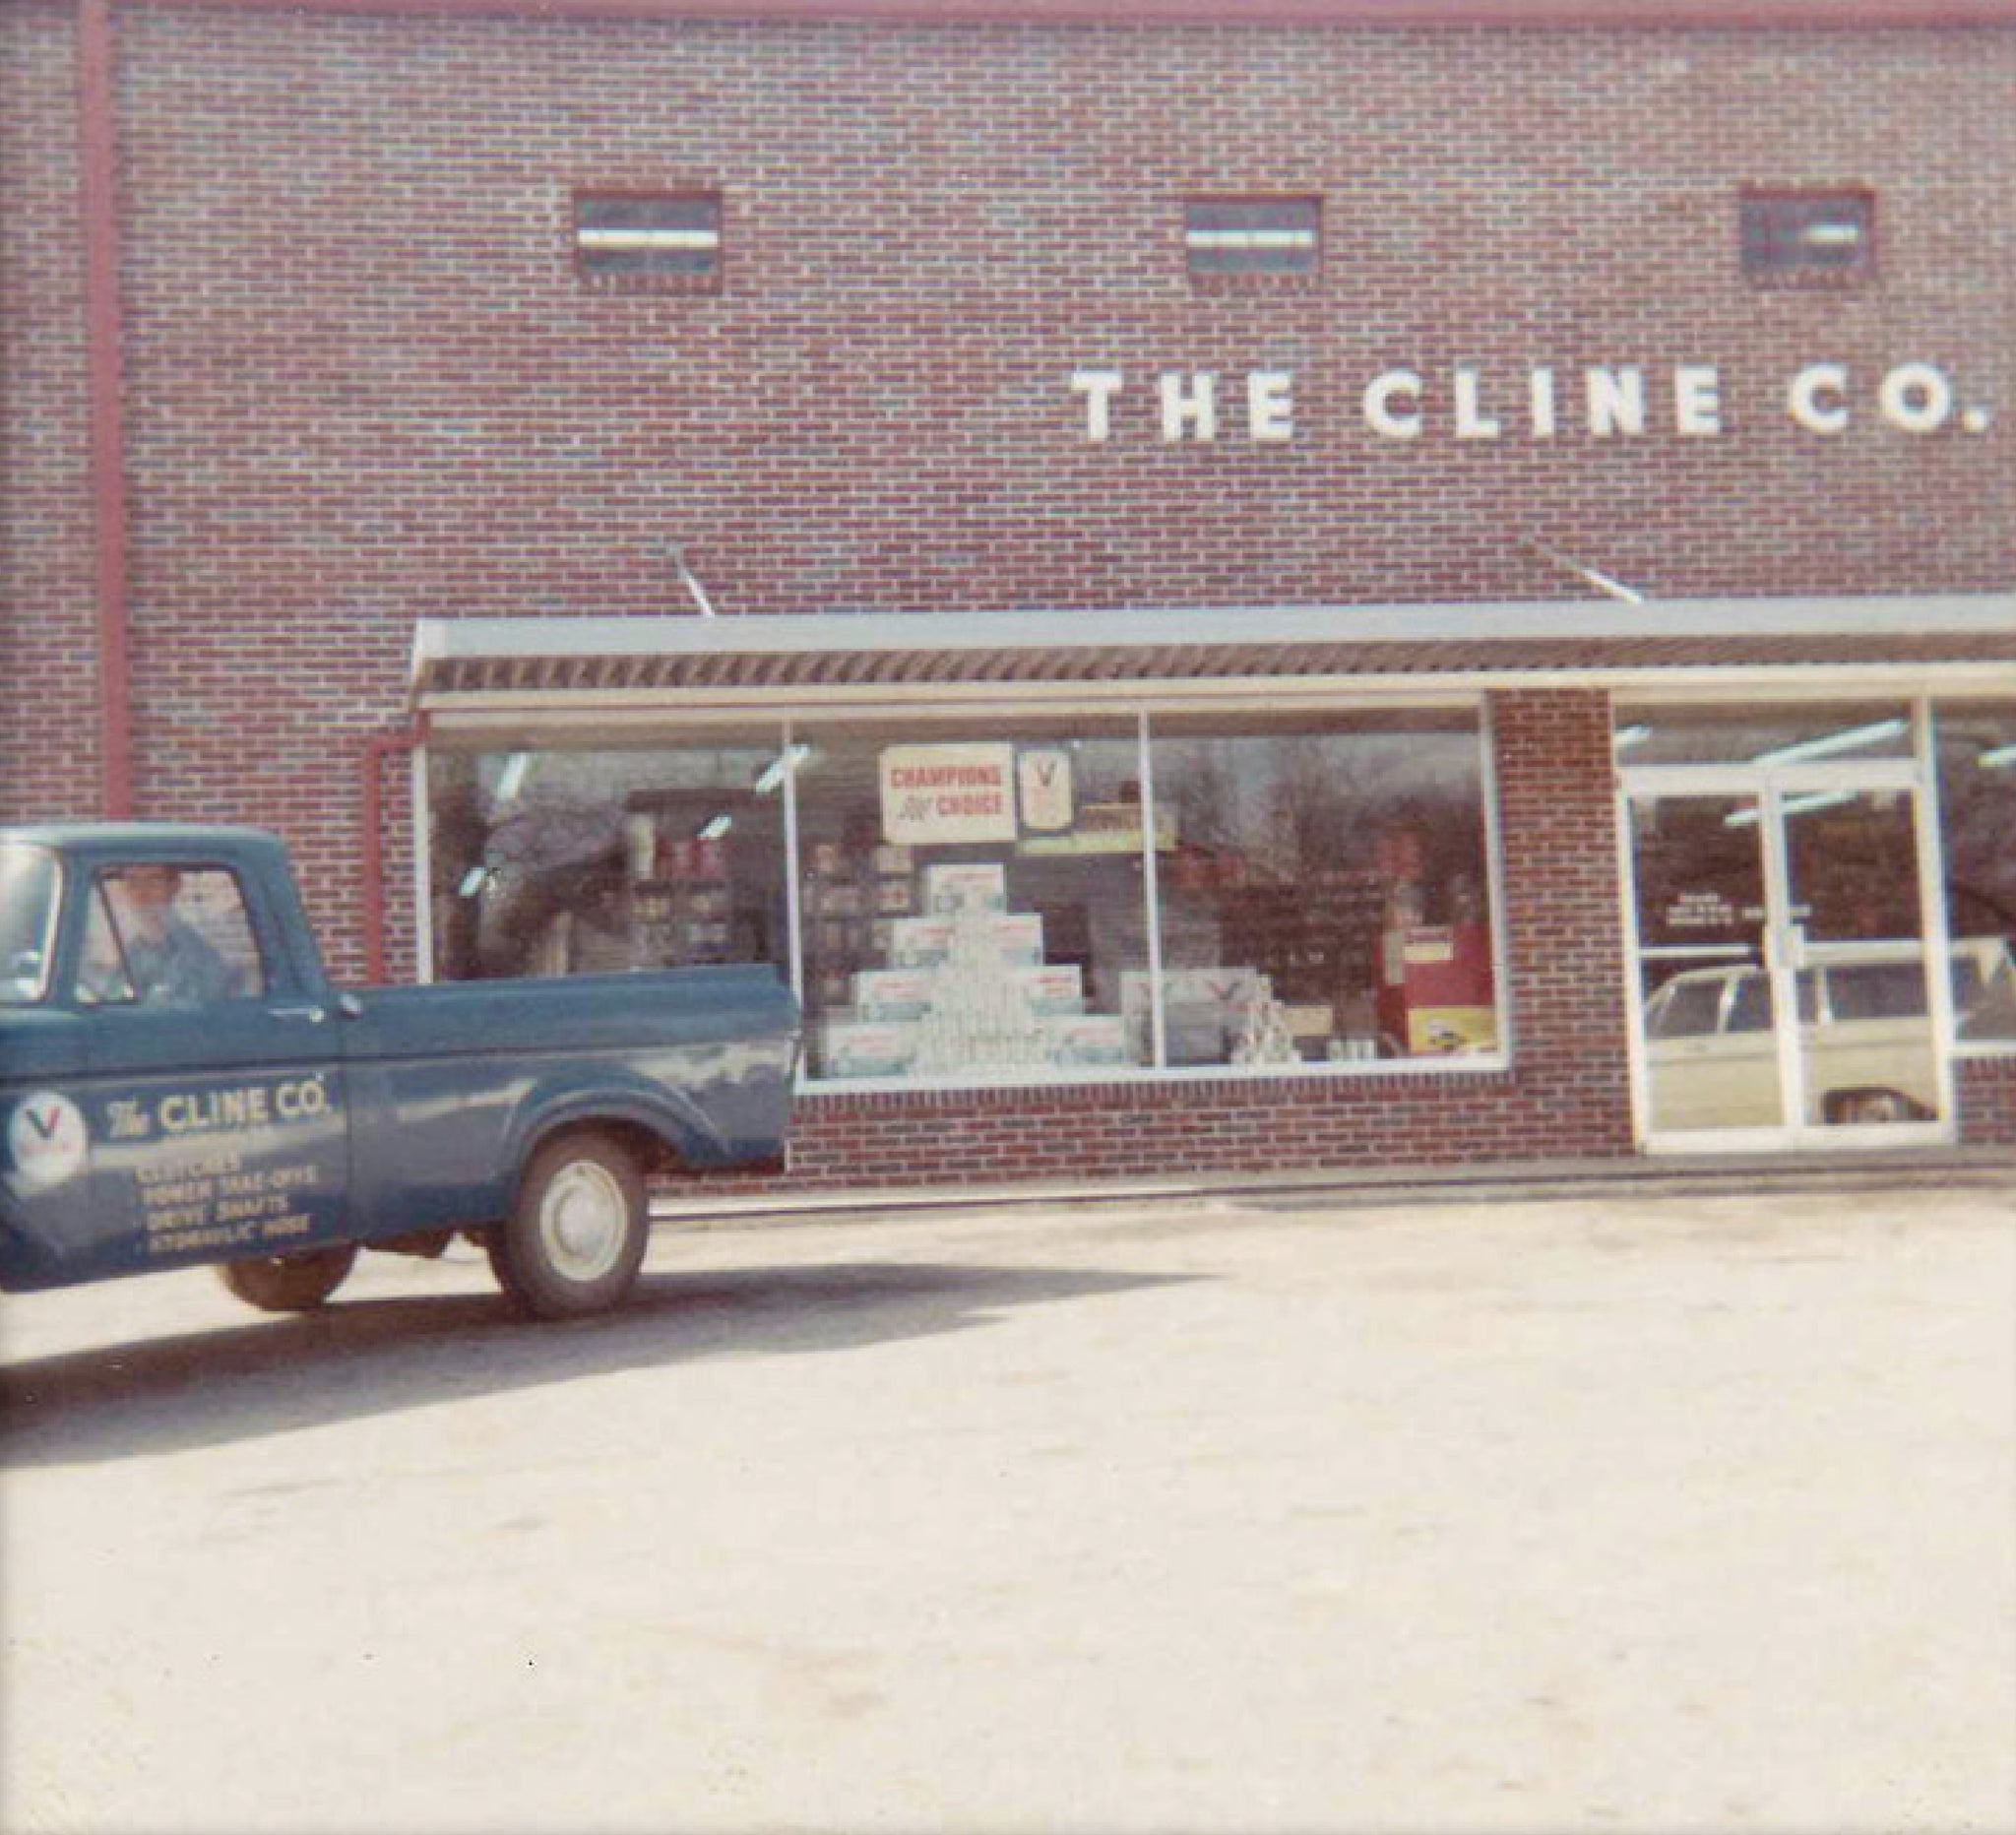 Cline Hose & Hydraulics Greenville South Carolina history